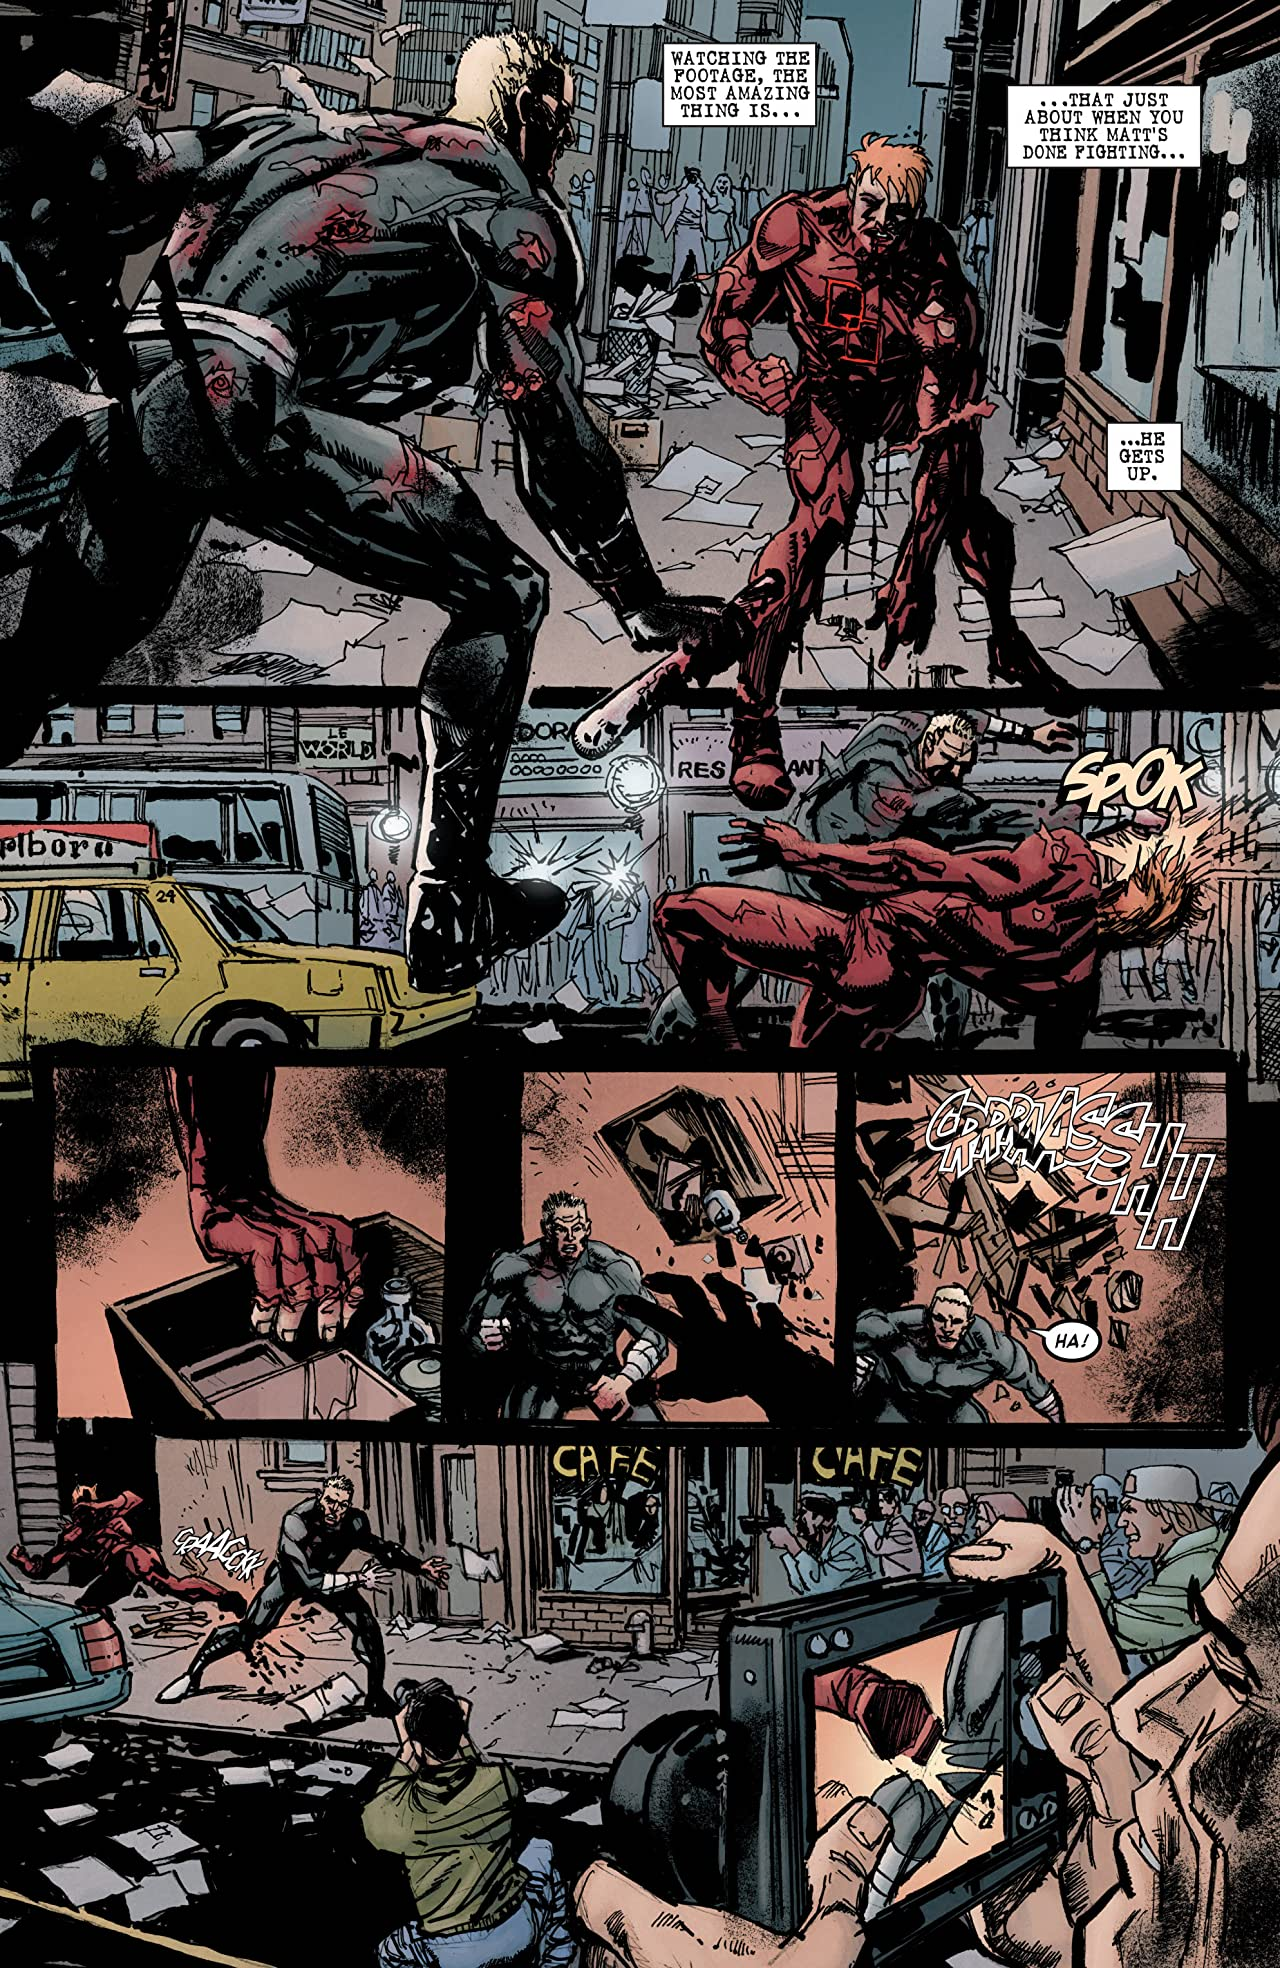 Daredevil: End of Days